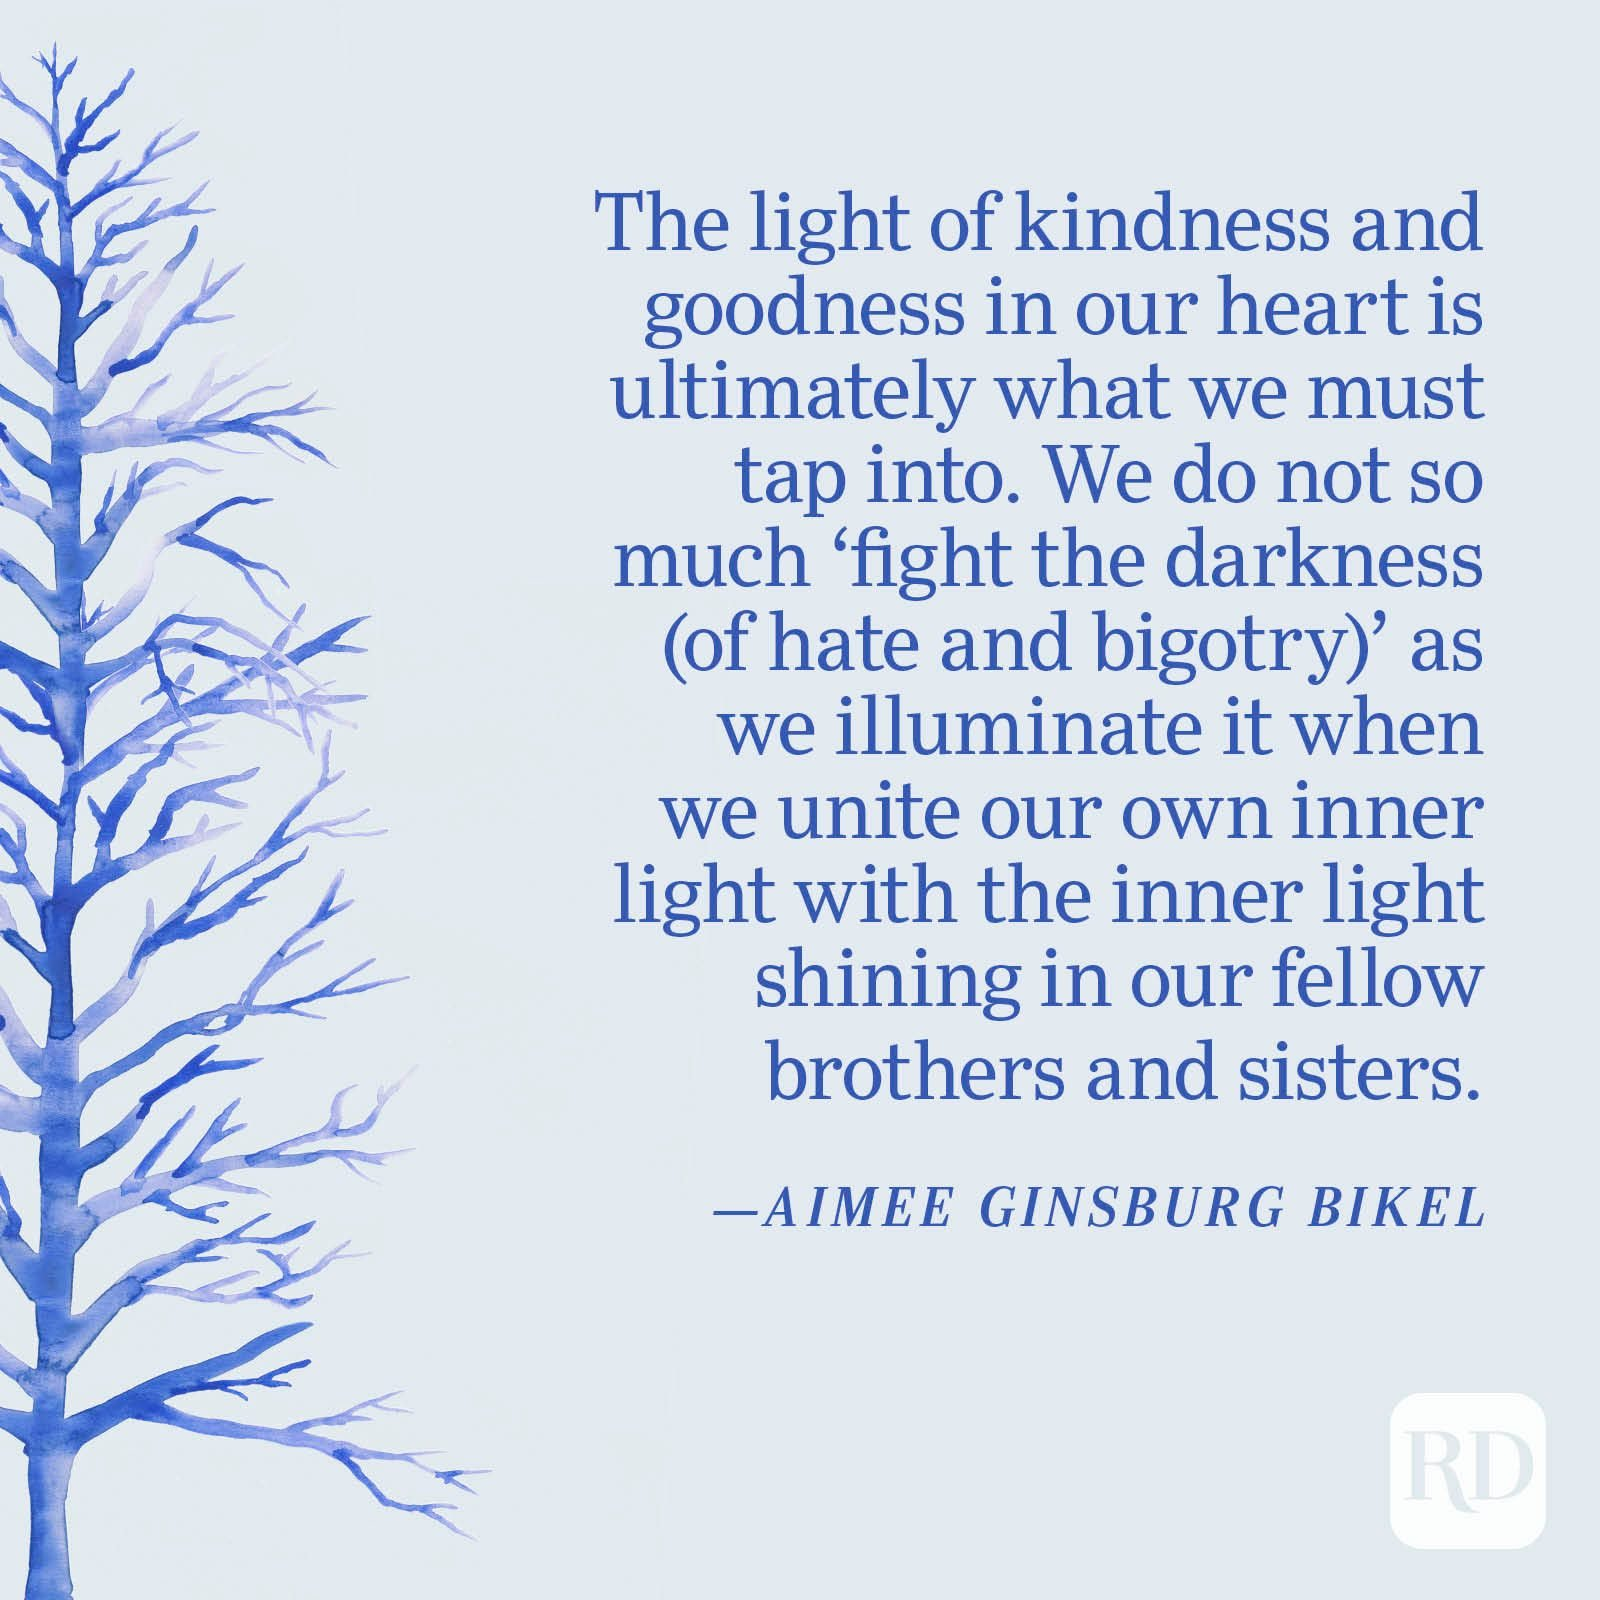 """""""The light of kindness and goodness in our heart is ultimately what we must tap into. We do not so much 'fight the darkness (of hate and bigotry)' as we illuminate it when we unite our own inner light with the inner light shining in our fellow brothers and sisters."""" —Aimee Ginsburg Bikel"""